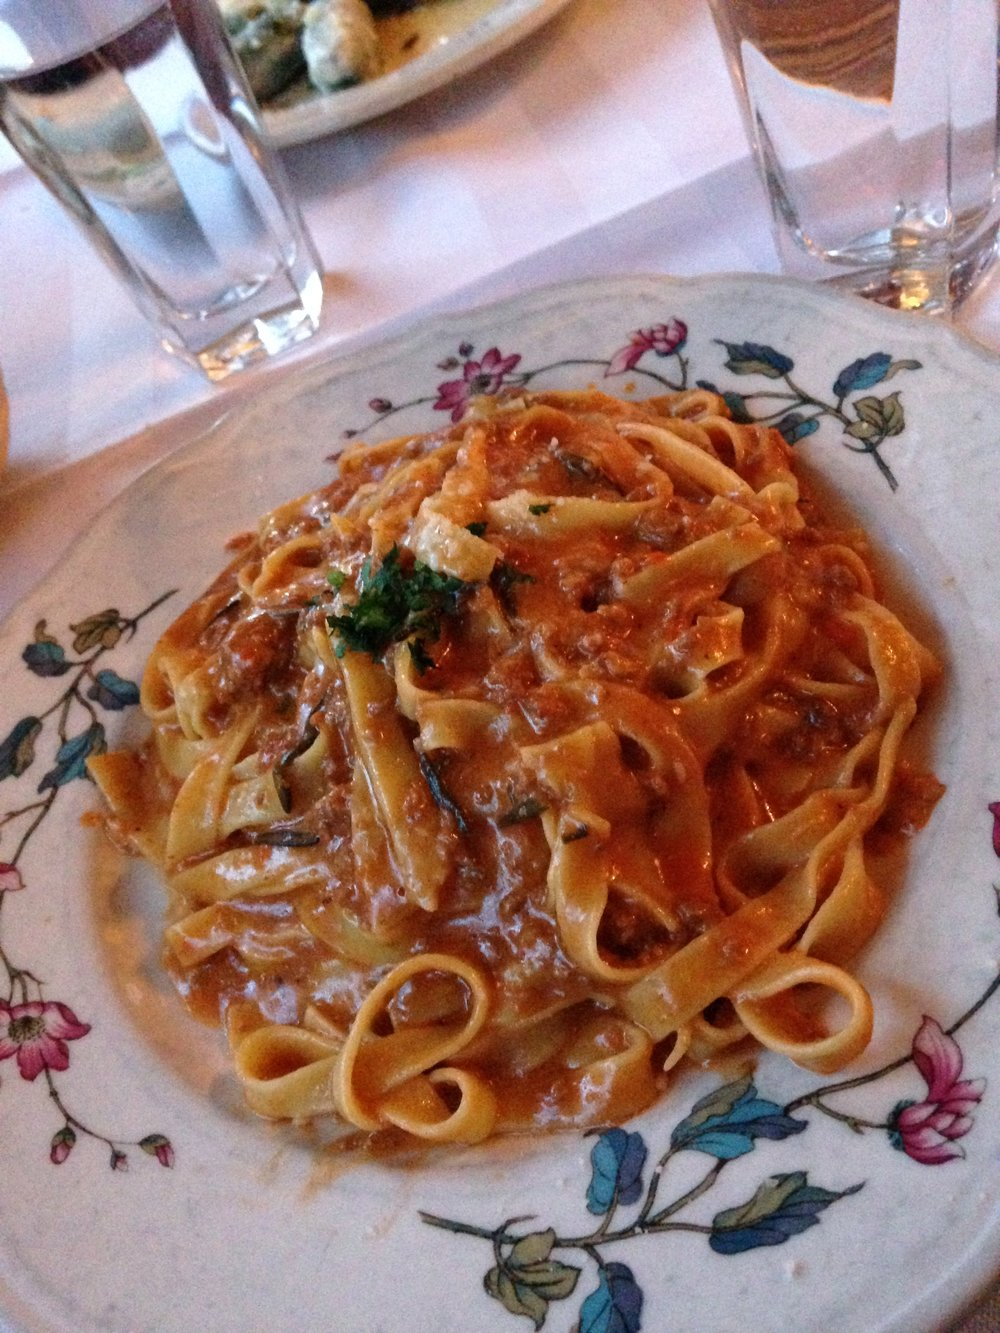 Tagliatelle Al Ragu at Al Di La, Brookyn, New York